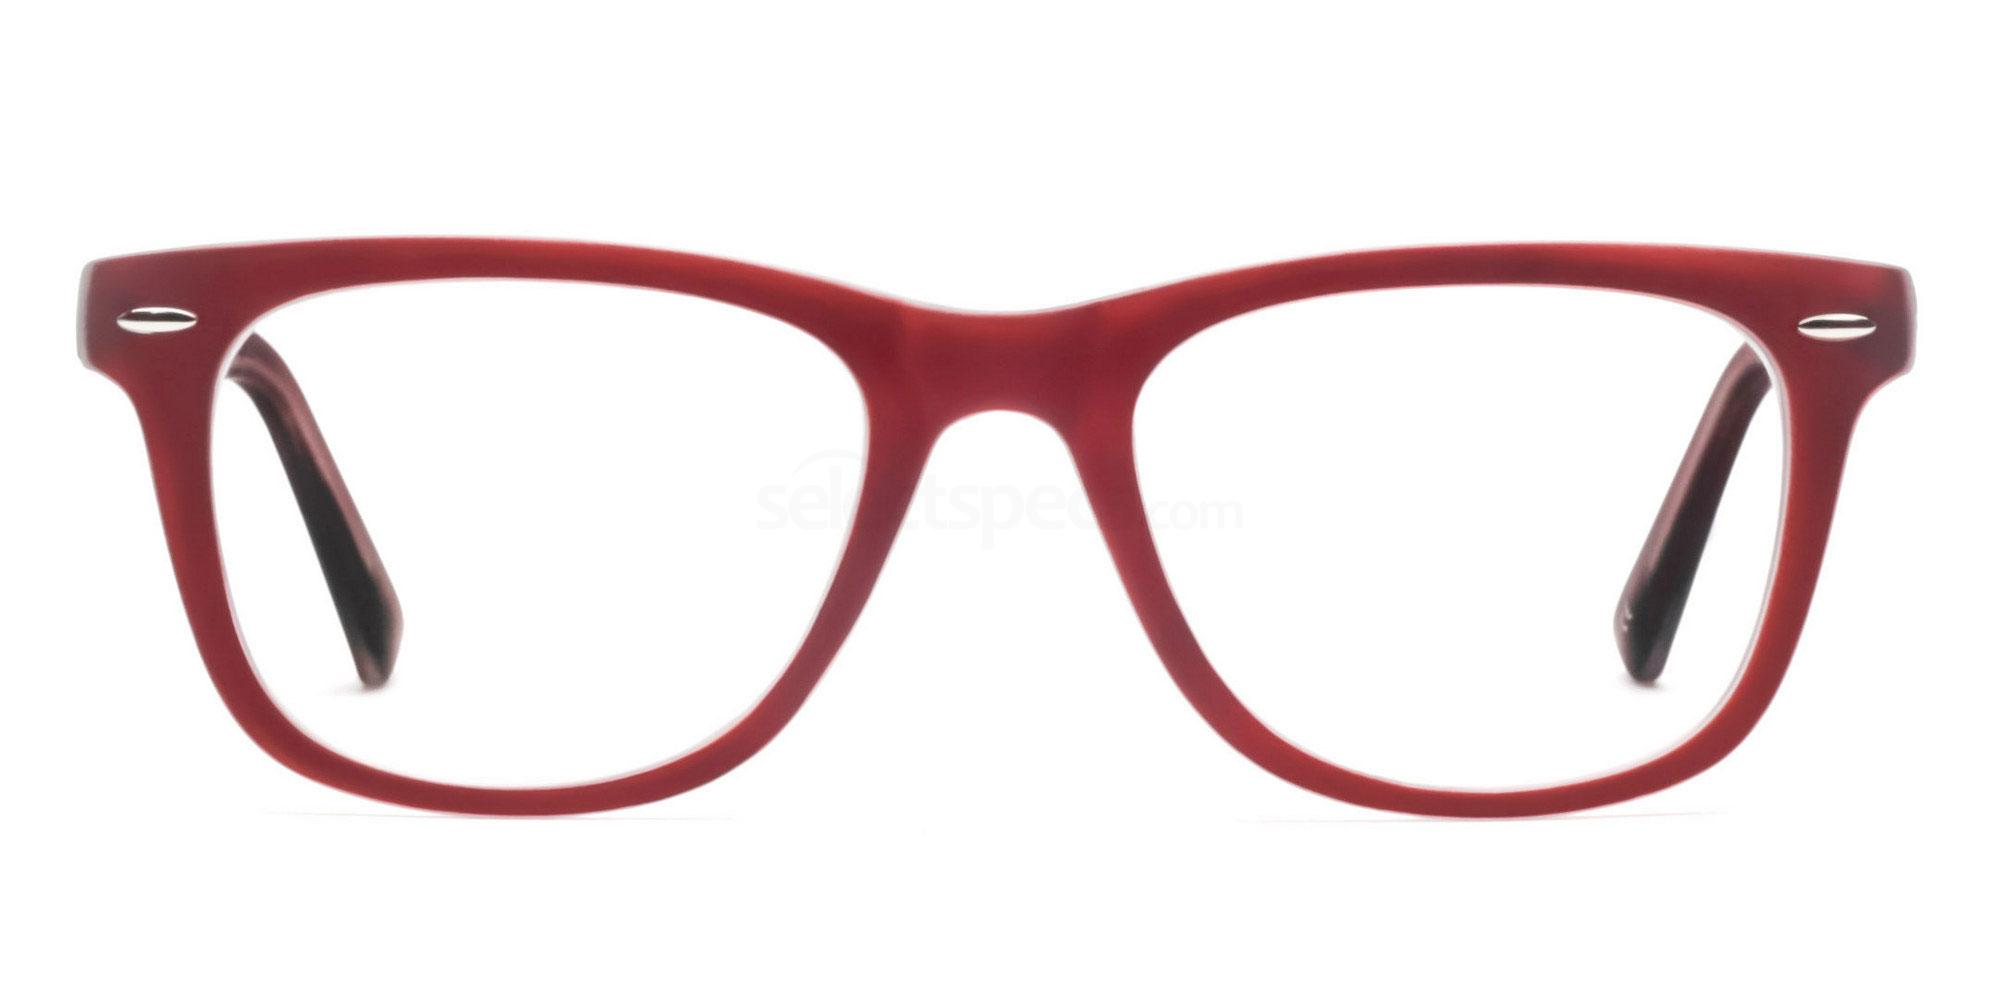 C13 8121 - Maroon on Transparent Glasses, Savannah